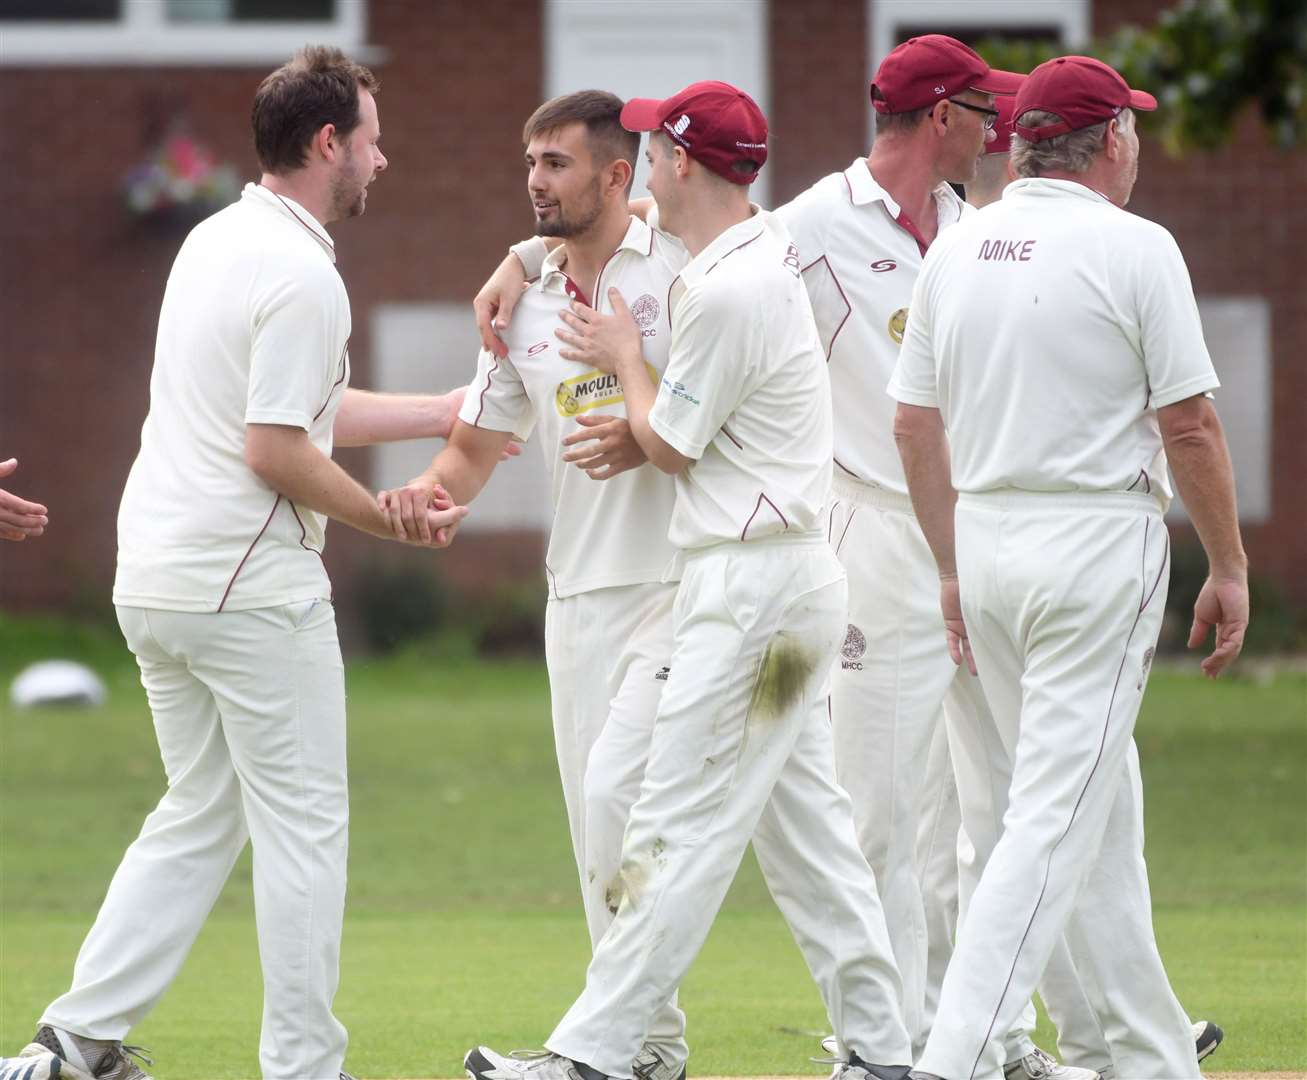 Alex Baker congratulated by Harrox teammates after taking a wicket. Photo by Adam Fairbrother. SG-030819-026AF